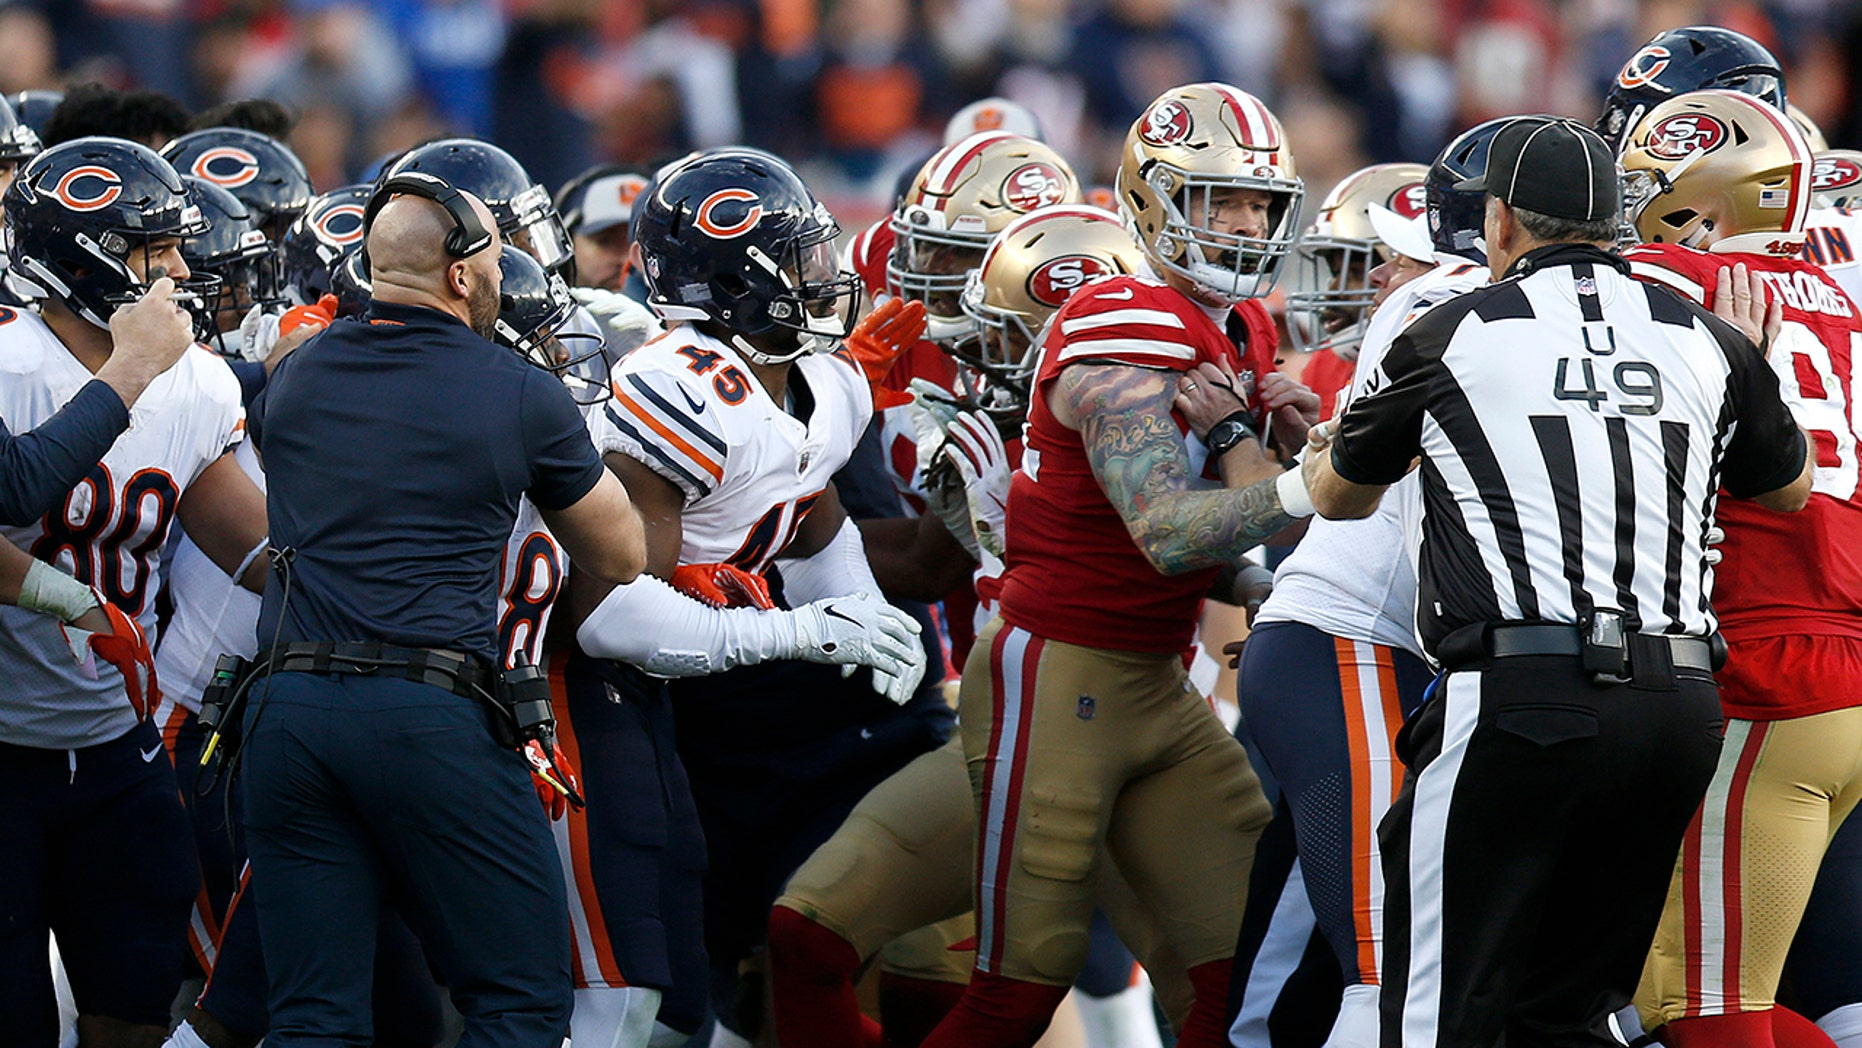 Richard Sherman among three players ejected for Bears-49ers skirmish